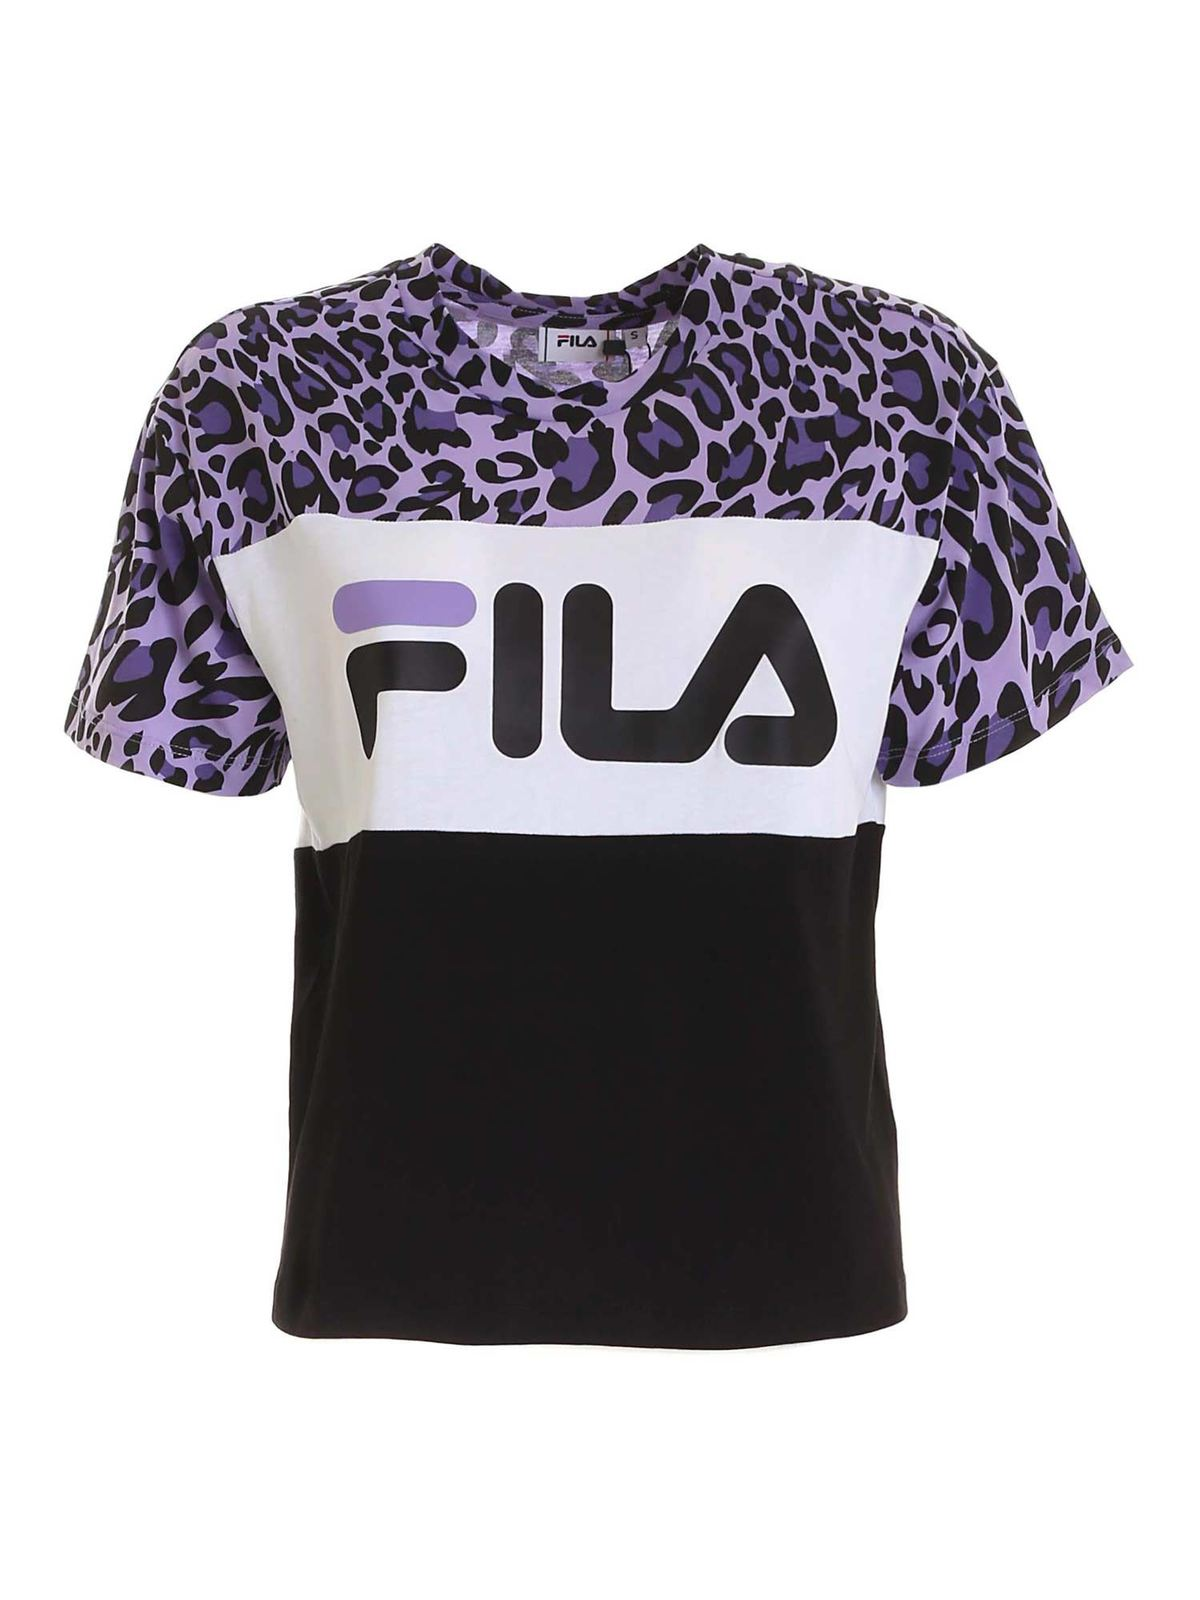 Fila ALLISON T-SHIRT IN PURPLE AND BLACK